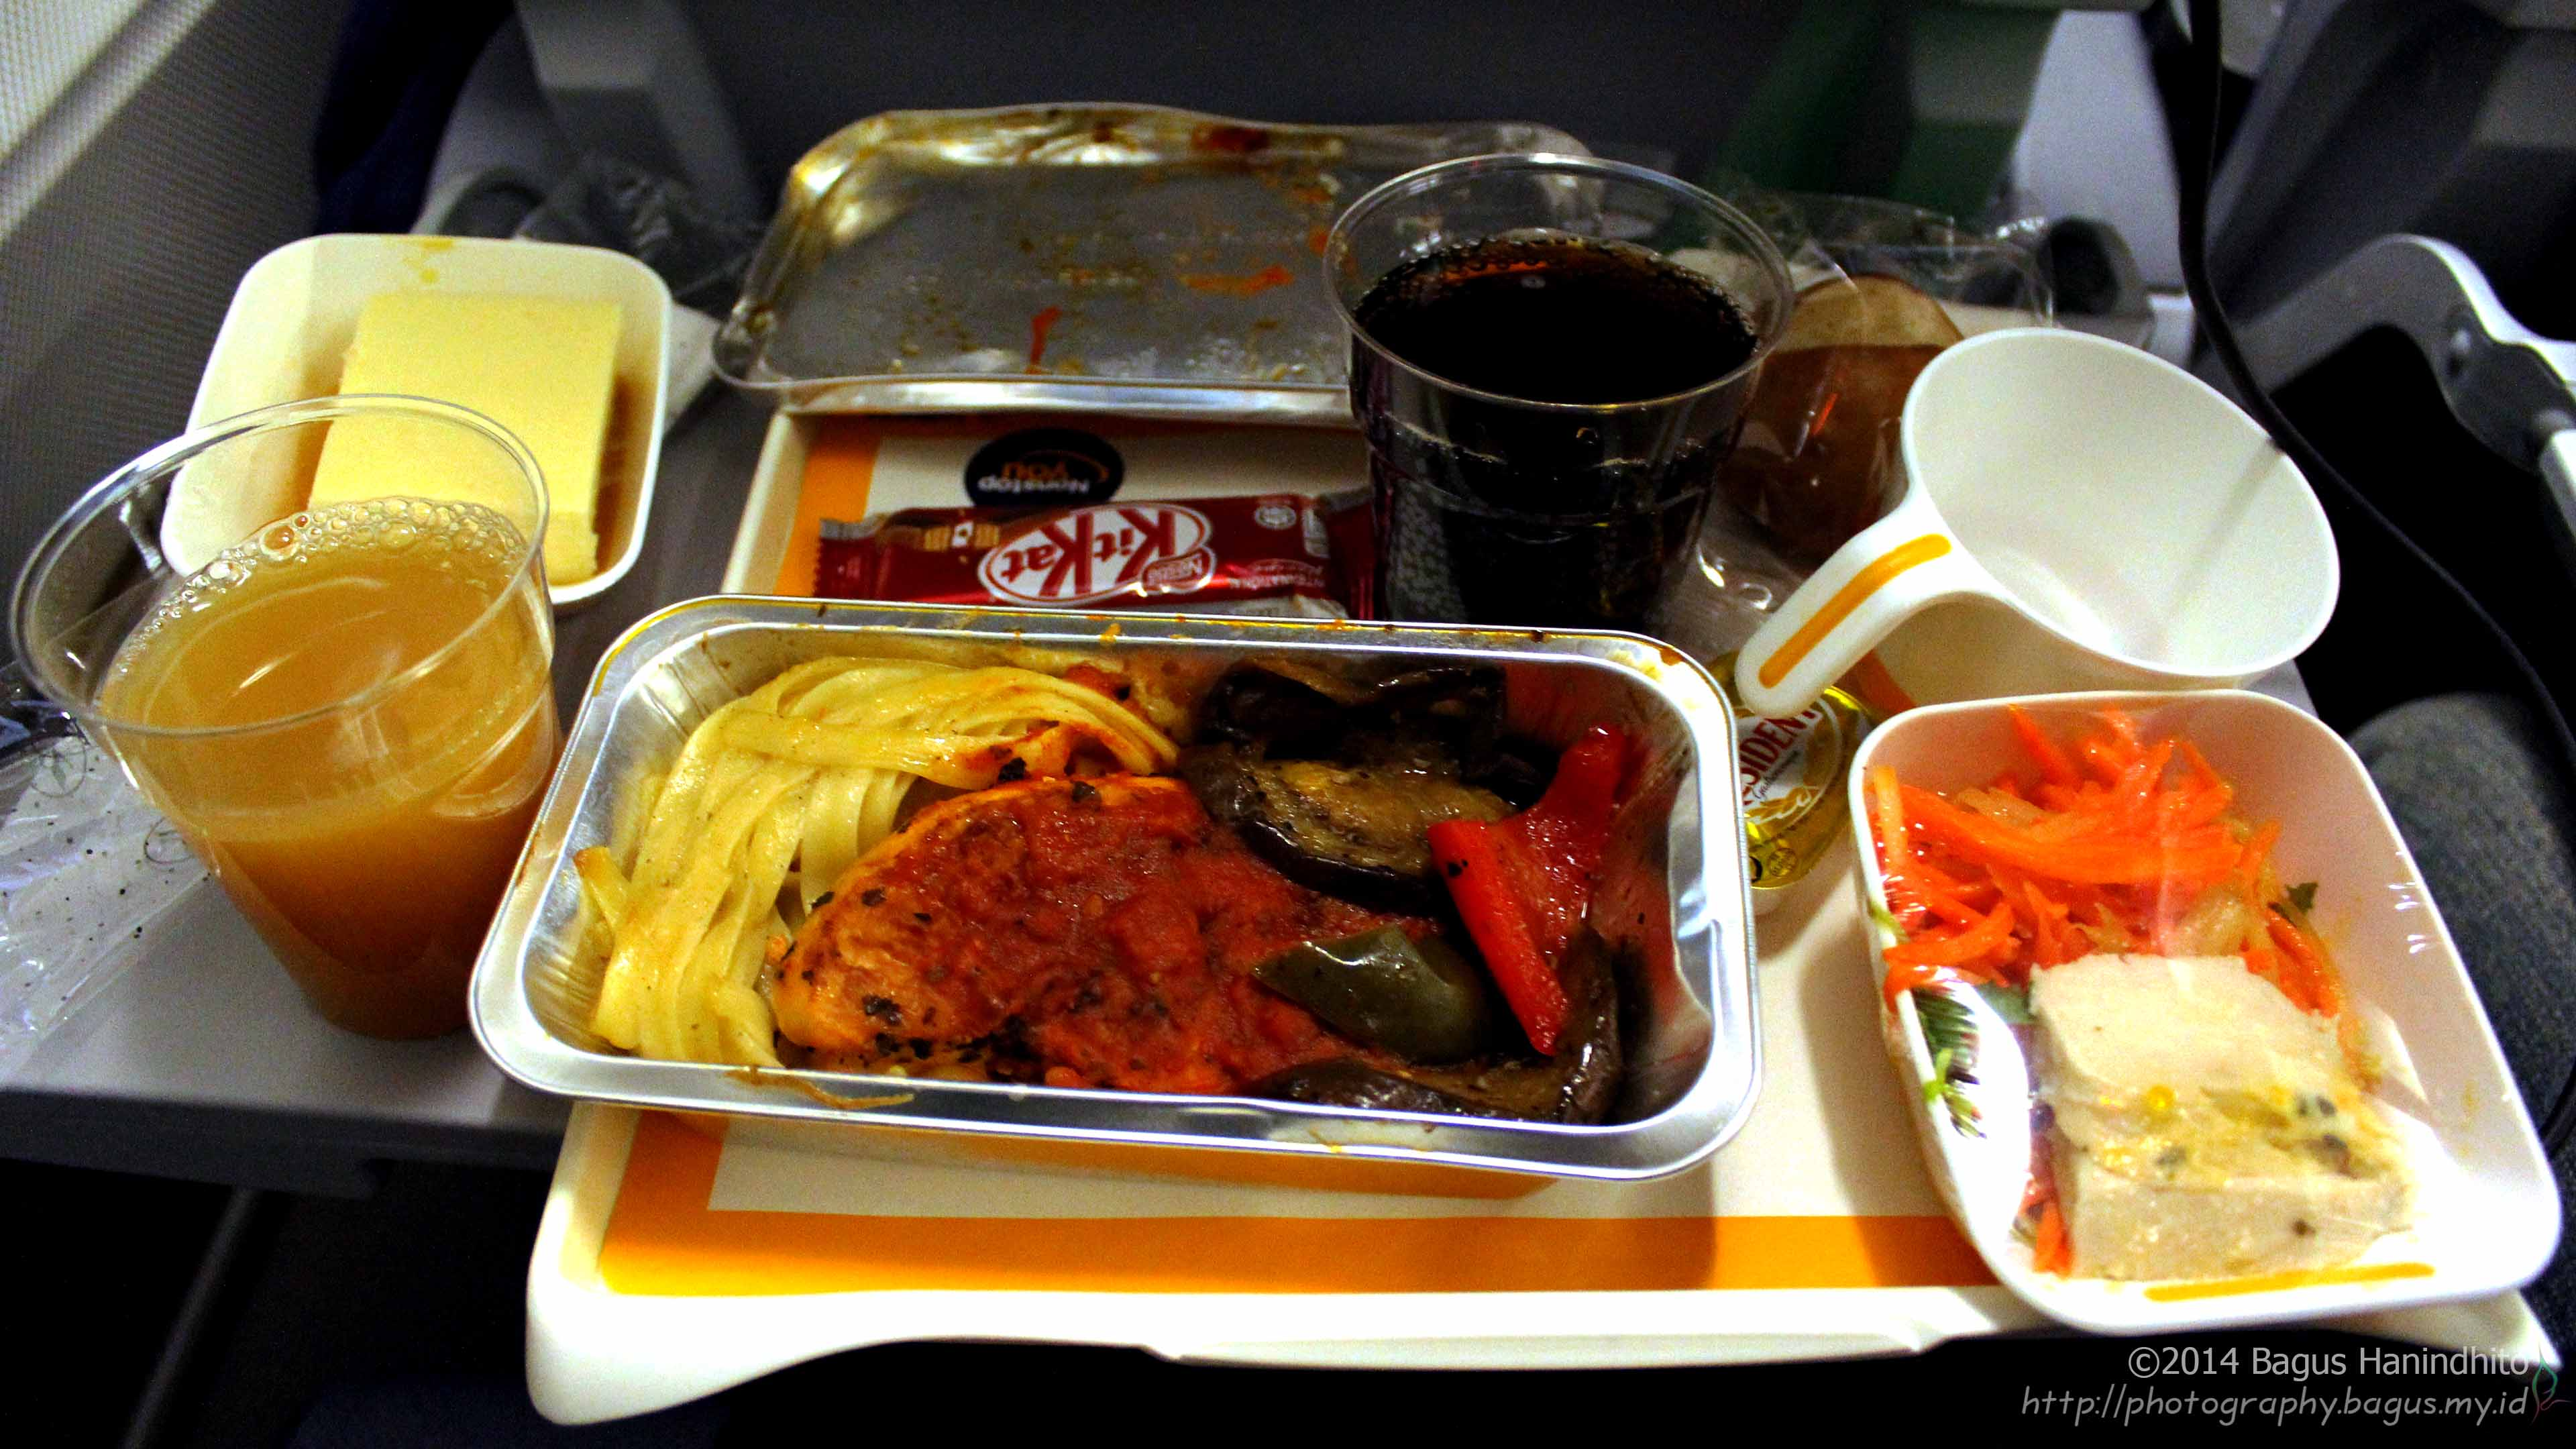 Before I went to sleep, the dinner was served during my flight from KUL to FRA on LH738. It was delicious!